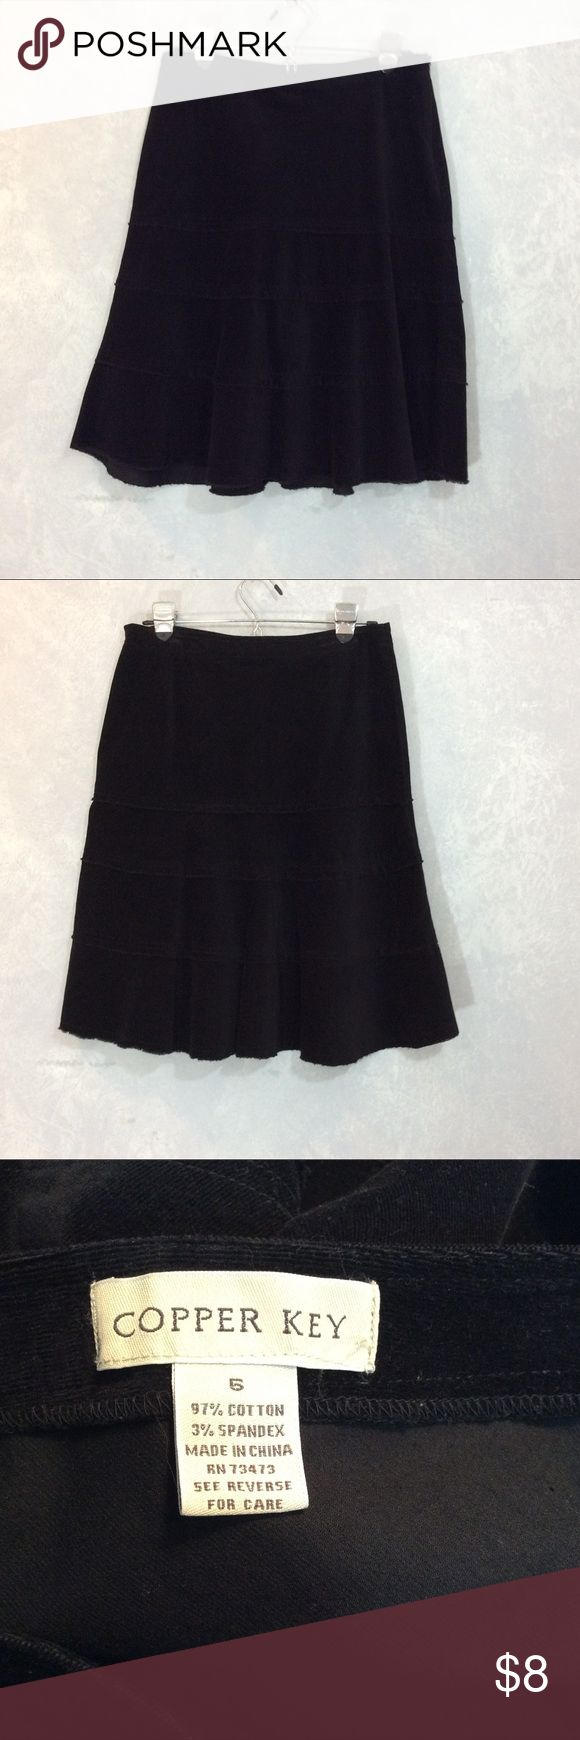 """Copper Key black sueded velvet skirt Size 6 *C-060 This cute tiered skirt is 97% cotton, 3% spandex, soft velvety, suede-like feel to fabric  *Measurements: Waist: 14"""". Length: 23"""" *Side zip, raw edge hemline *A fun, swingy skirt so you can  *Make room 4 happy Copper Key Skirts Mini"""